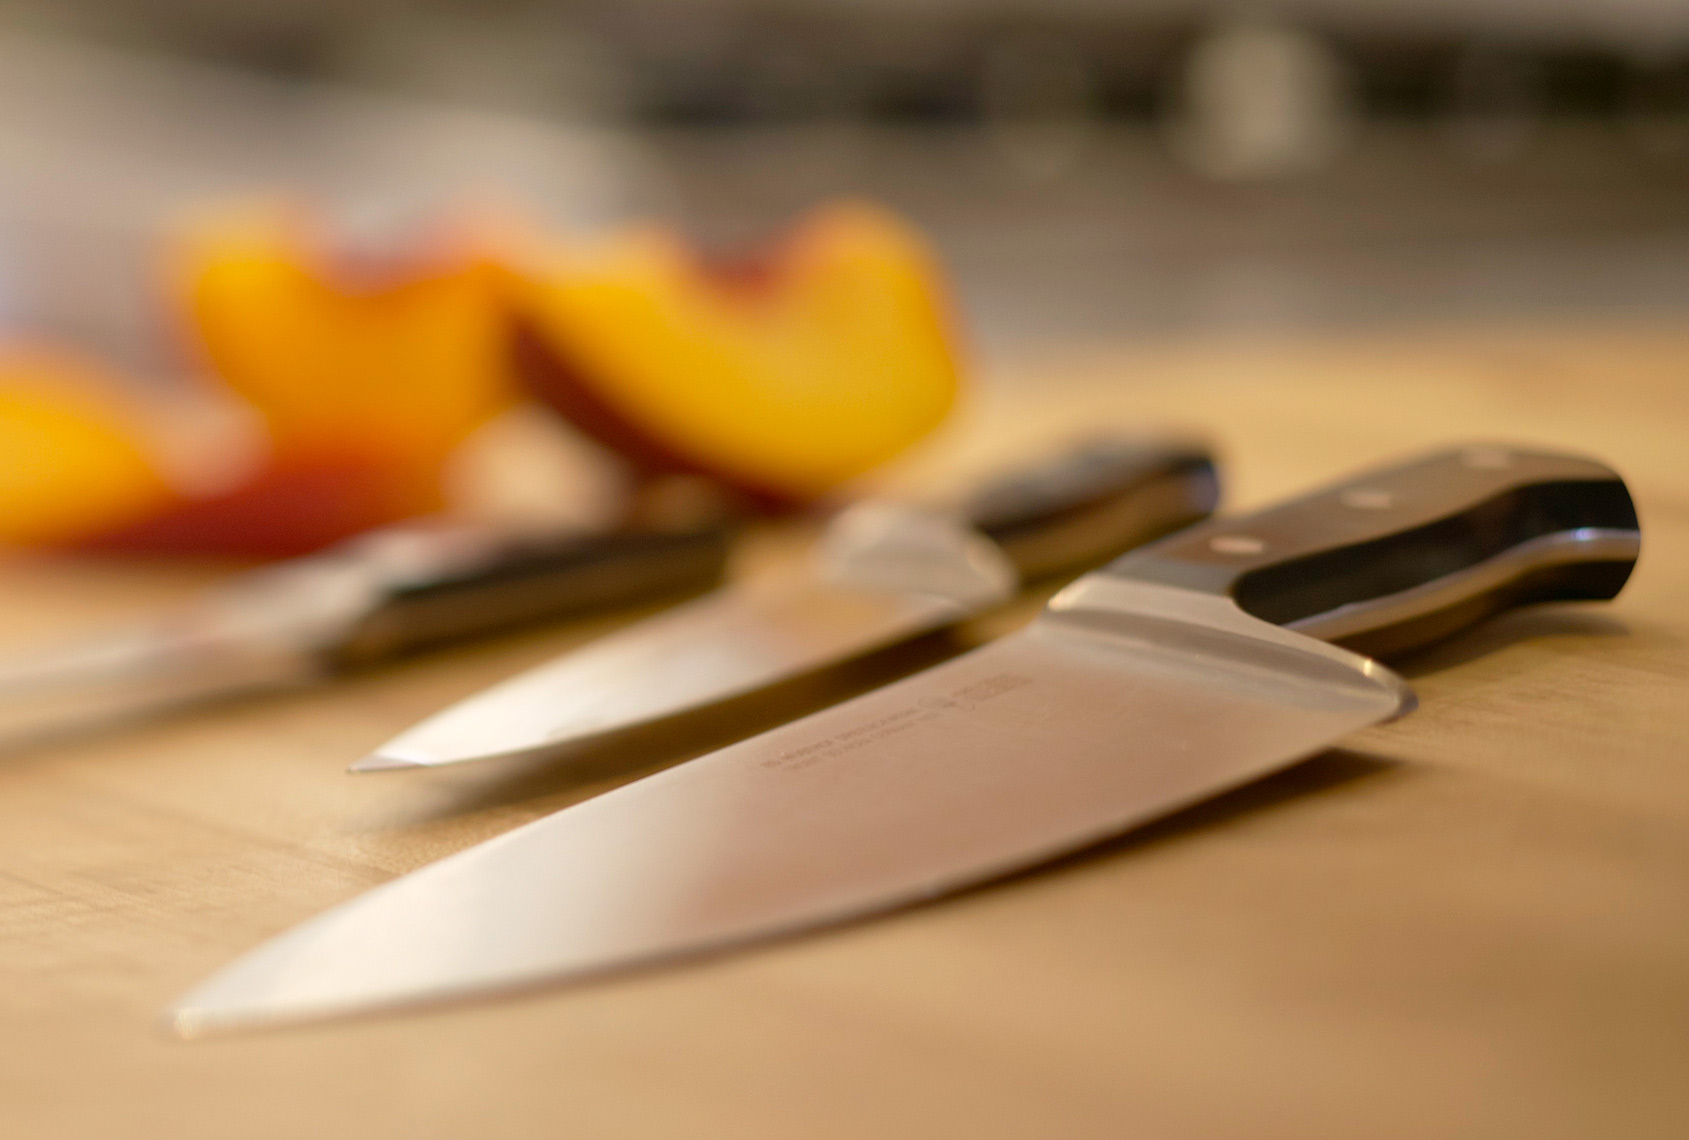 Andy-Post-Food-Photography-Kitchen-Knives